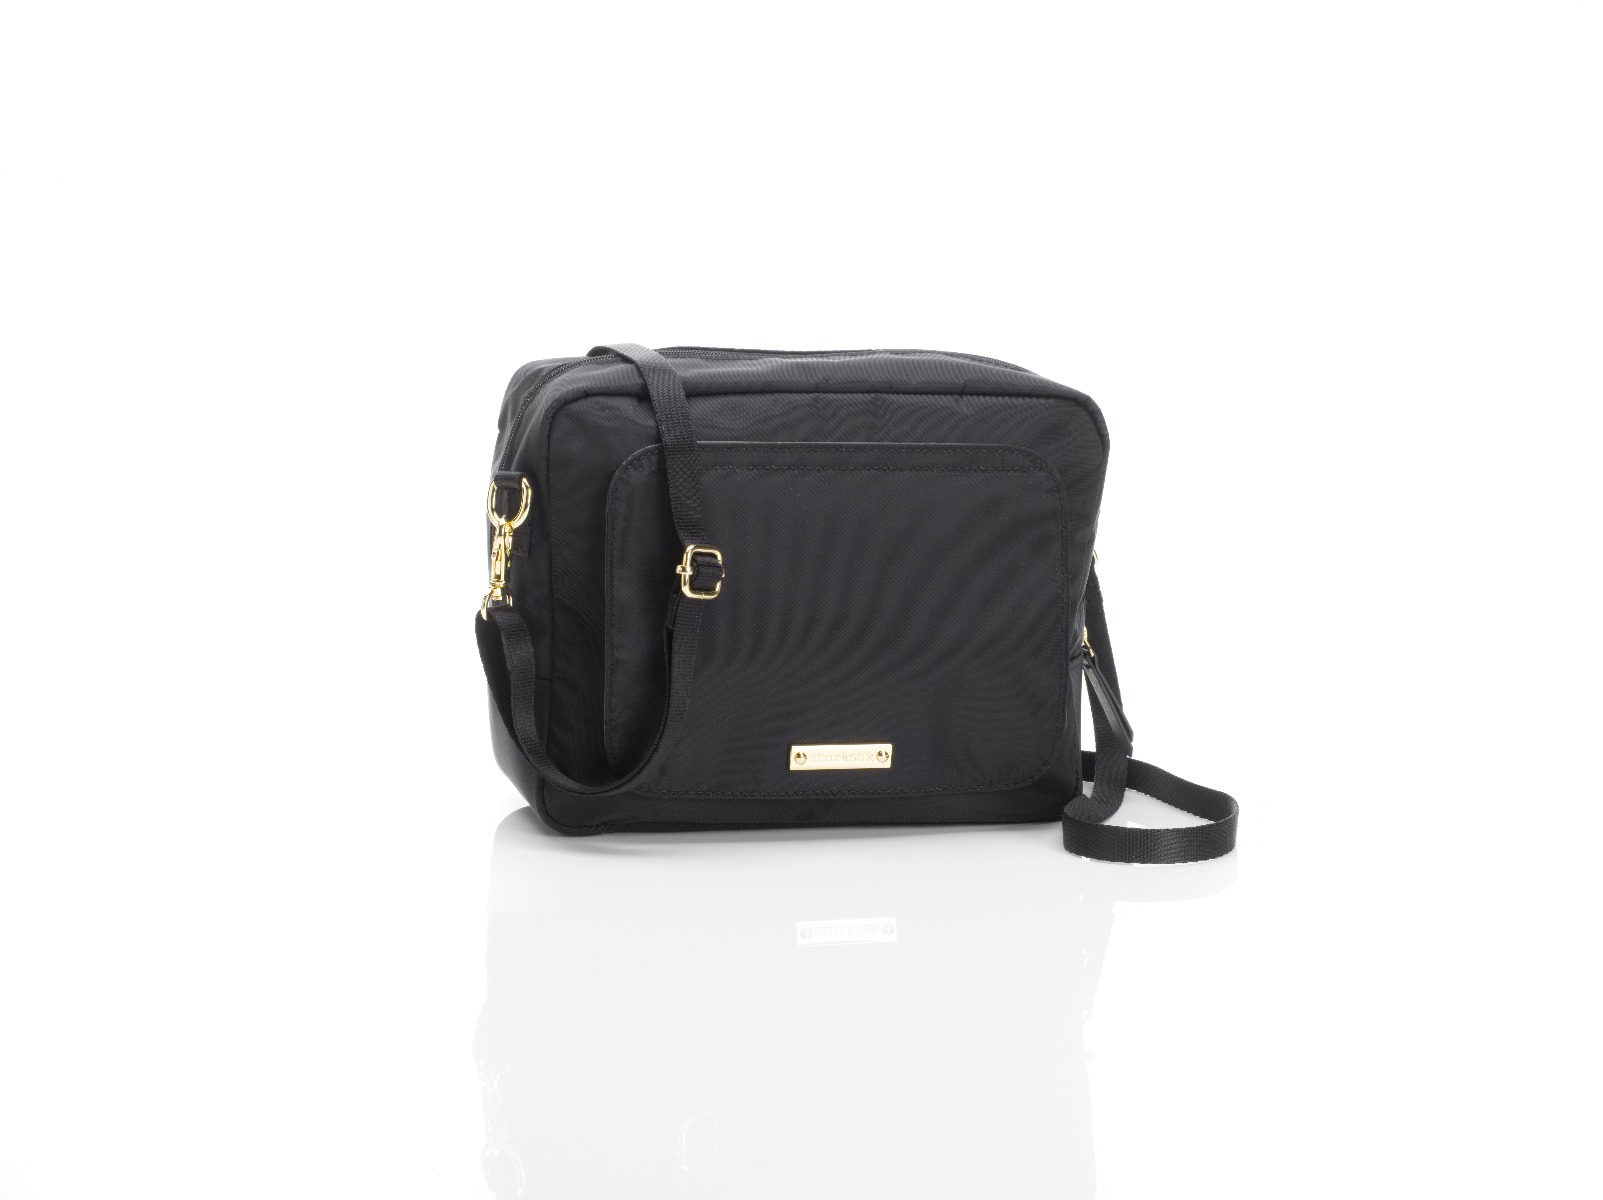 Storksak Mini Fix Cross Body Changing Bag Black